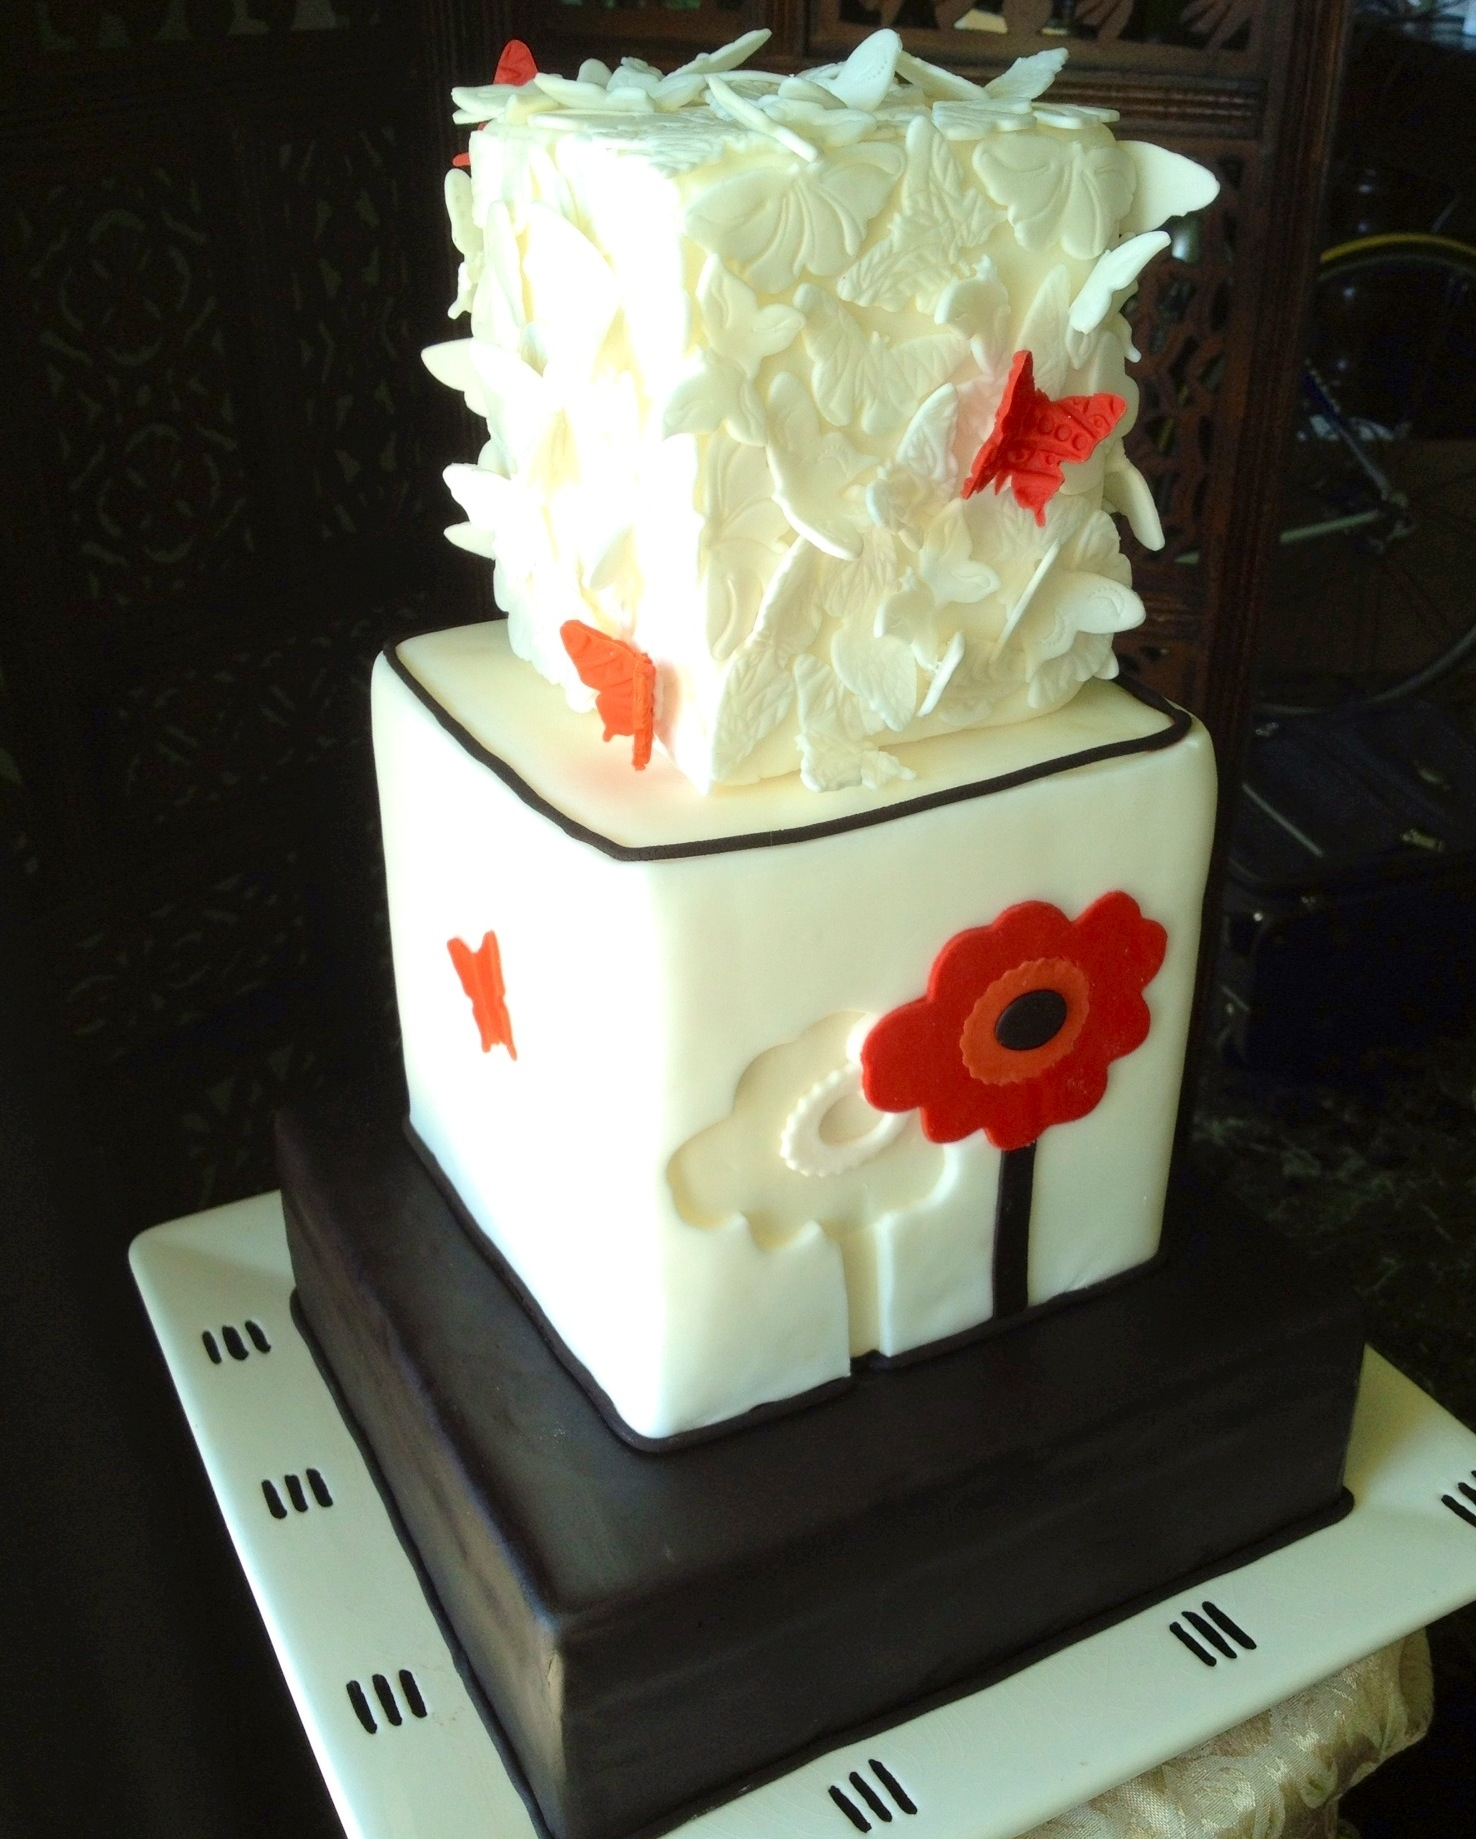 Cake by: The Vagabond Baker-Custom Cakes and Sweets with a Global Influence. Square 3 tier with butterflies covering top tier and a single red poppy shadowed by a cut-out of same poppy. I made this display cake for a silent auction to raise money for GCA an organization that I am involved with that builds schools and orphanages in Haiti.